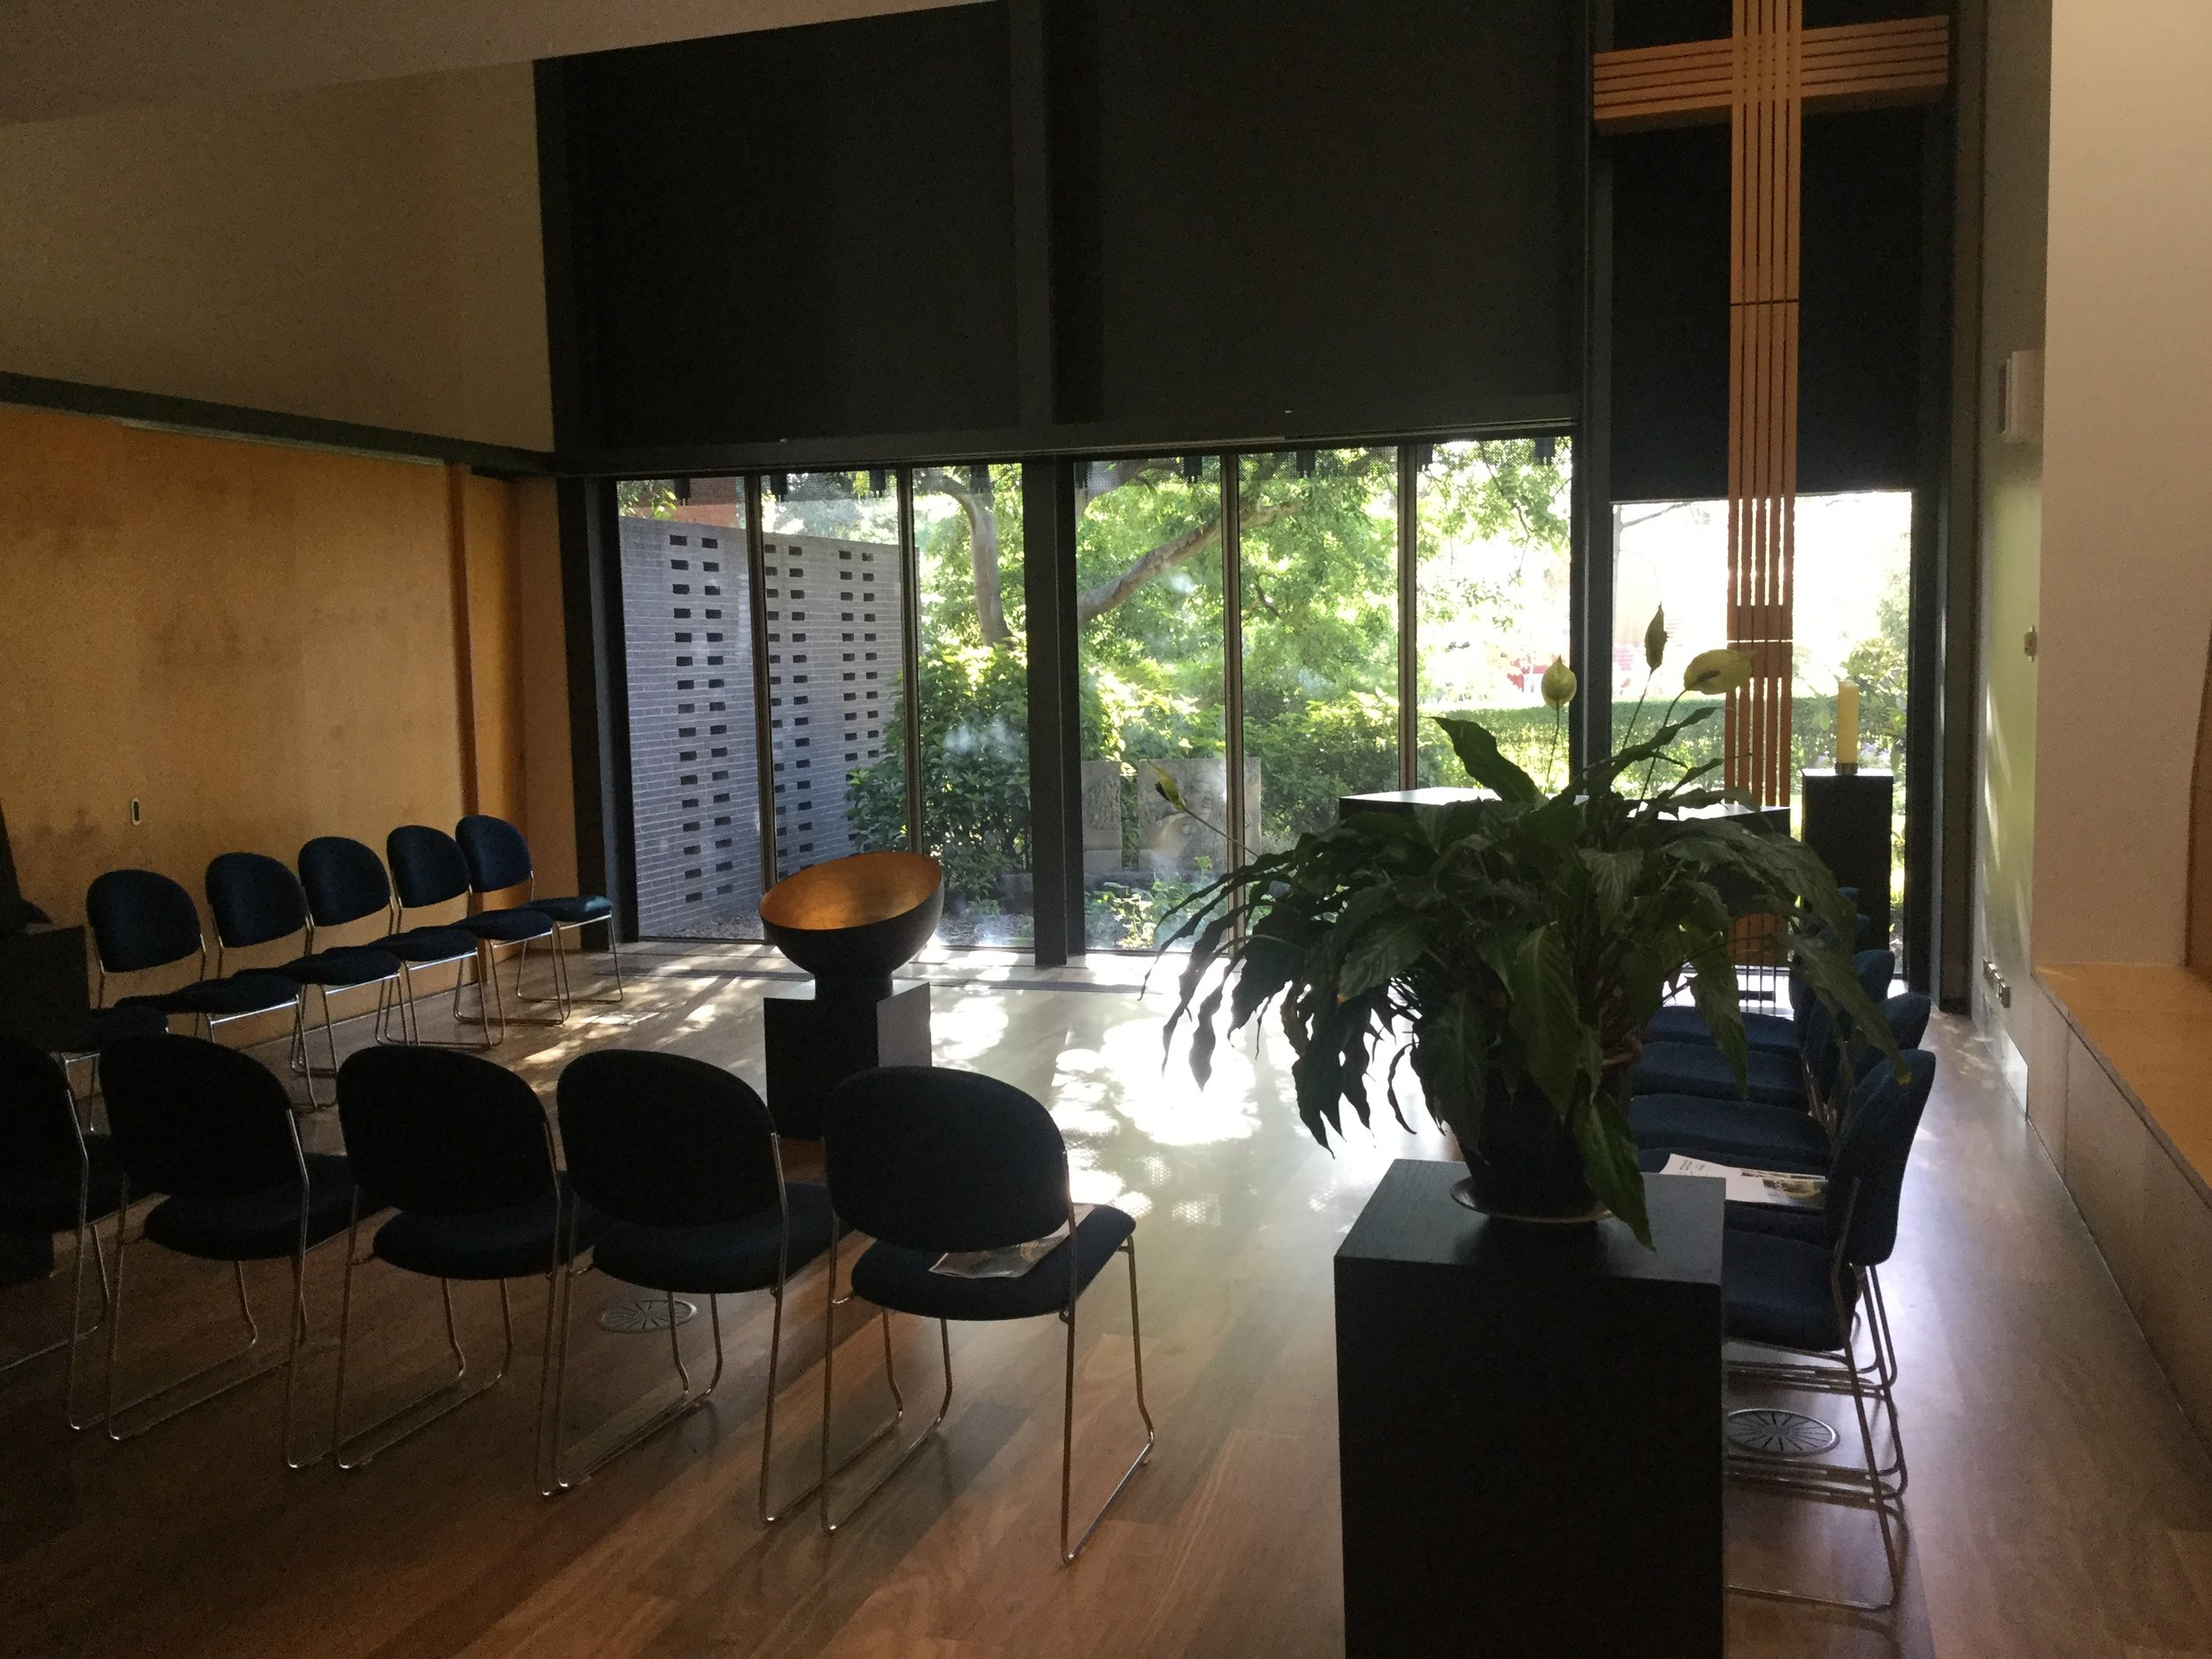 Photograph by Stephen Burns. The Centre for Theology and Ministry (CTM) Chapel.